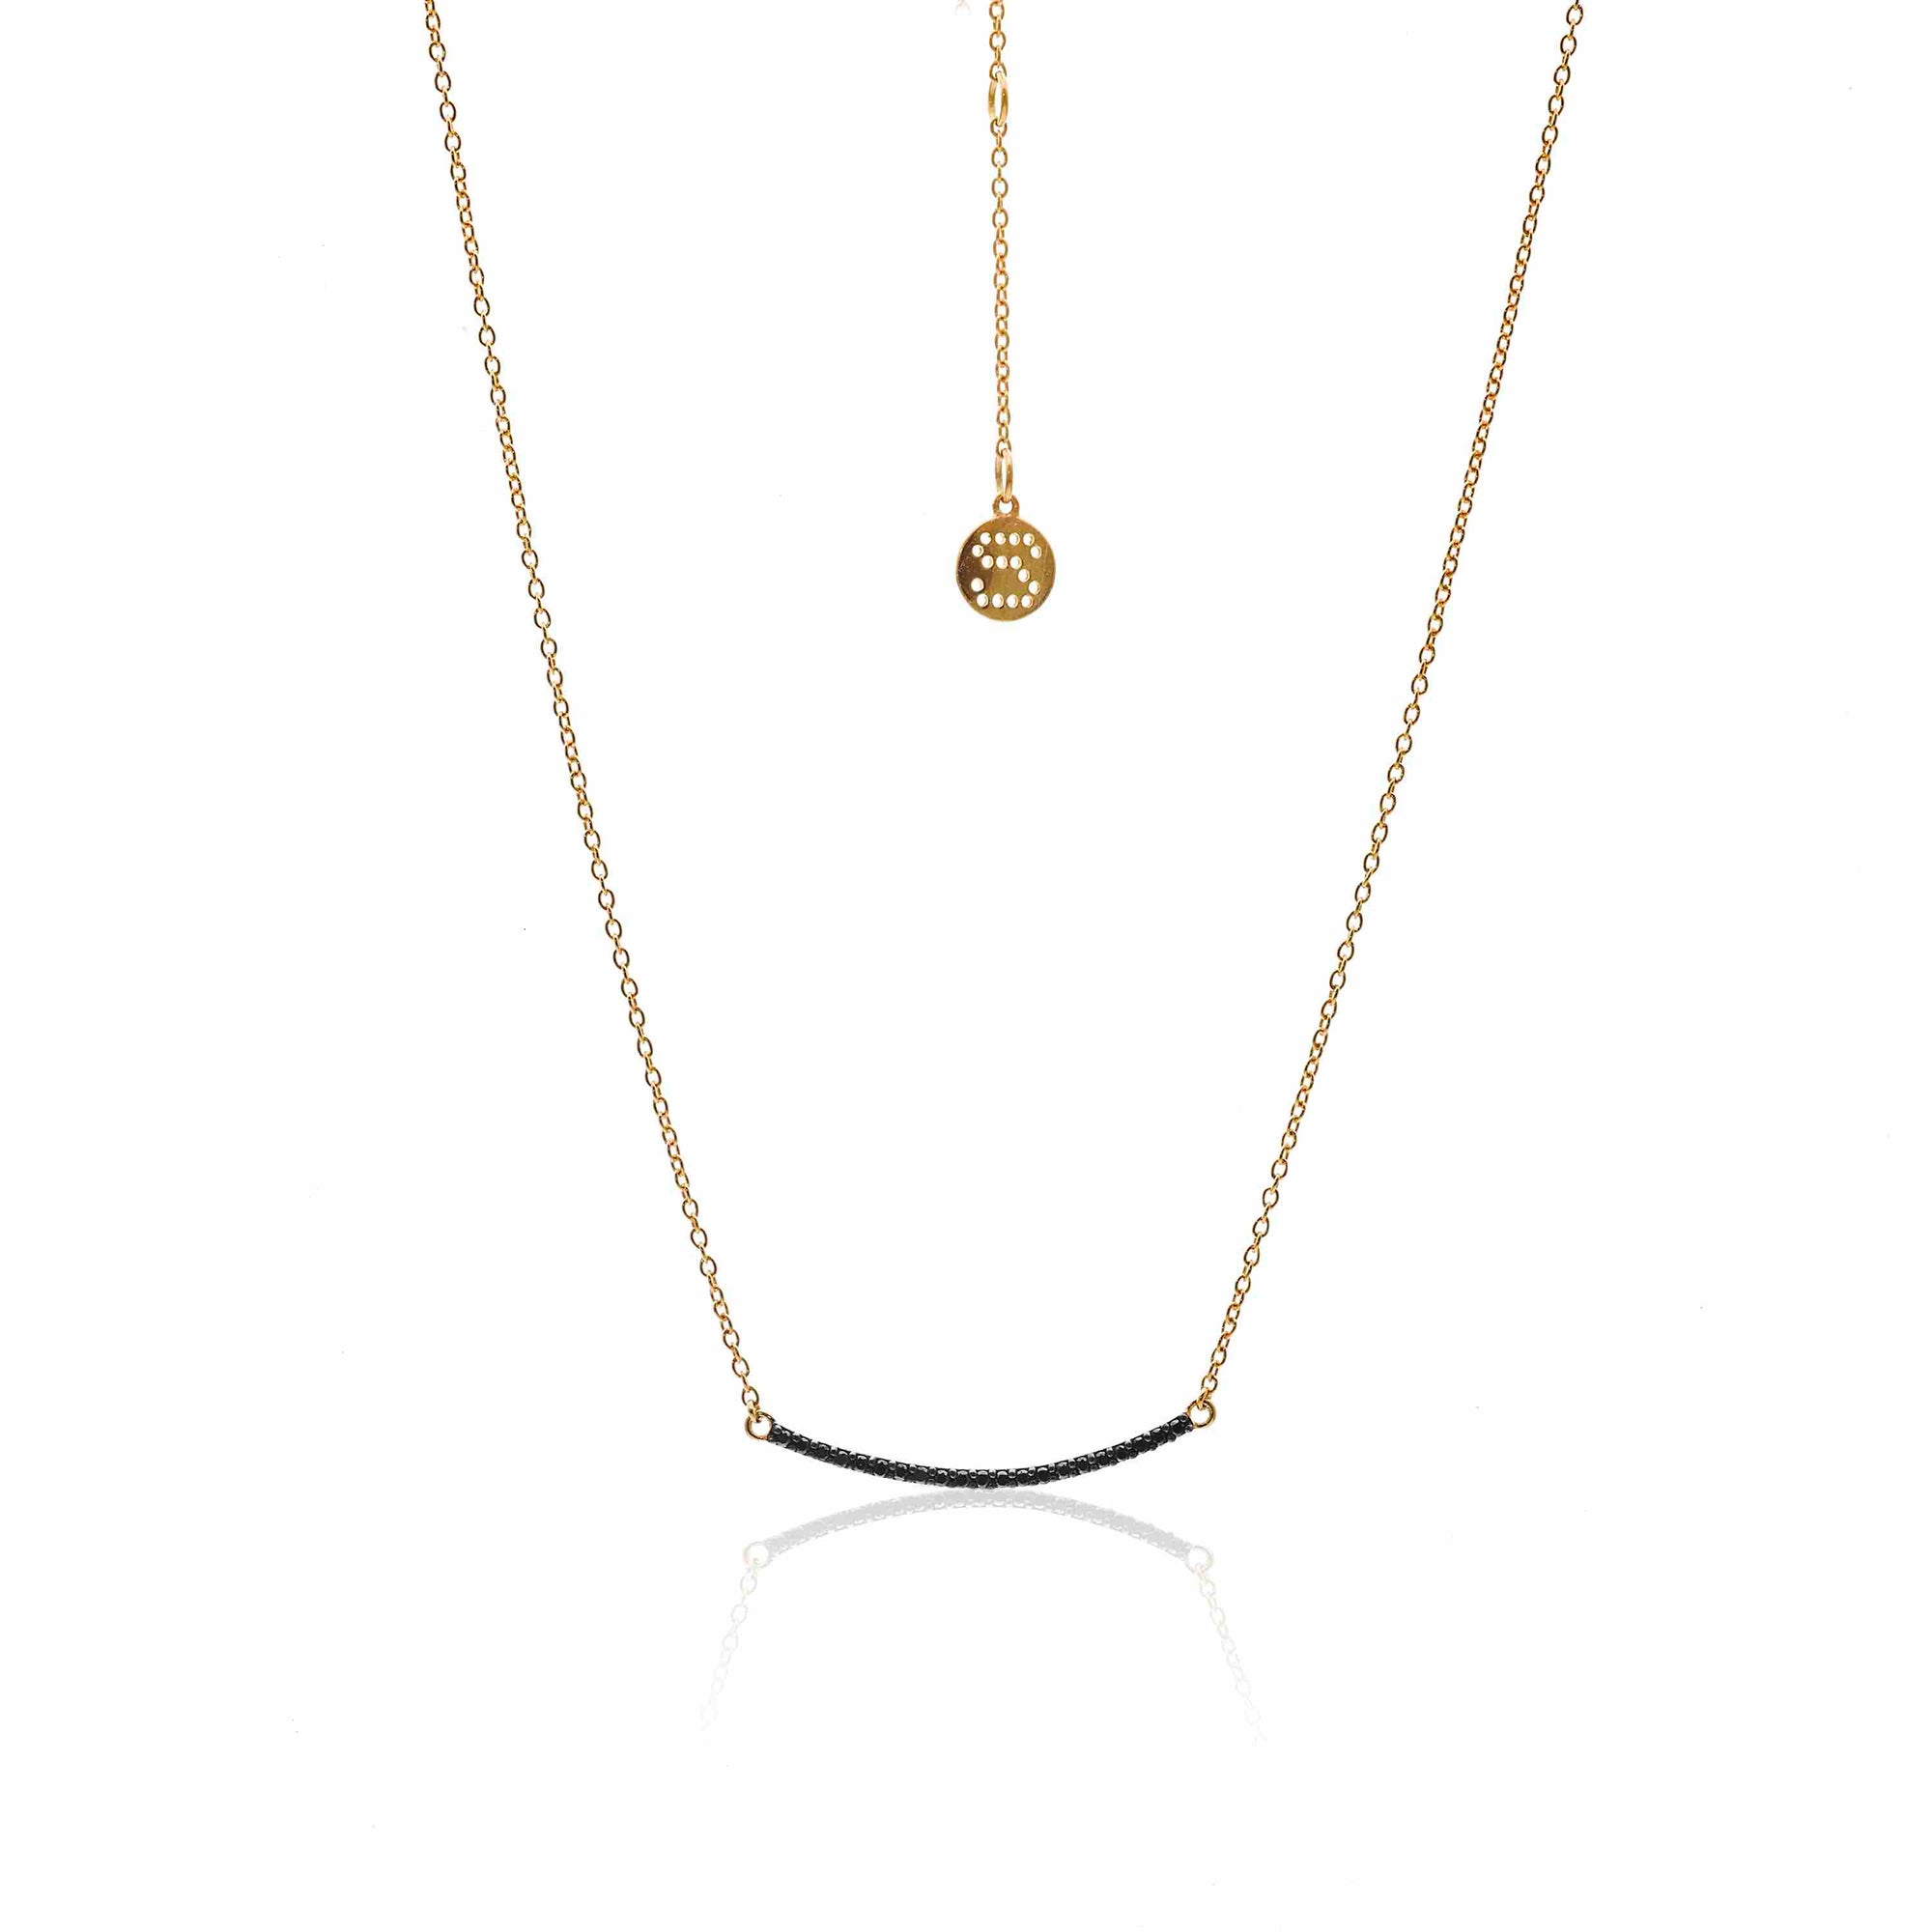 Silk & Steel Jewellery Midnight Black Diamond Gold Necklace